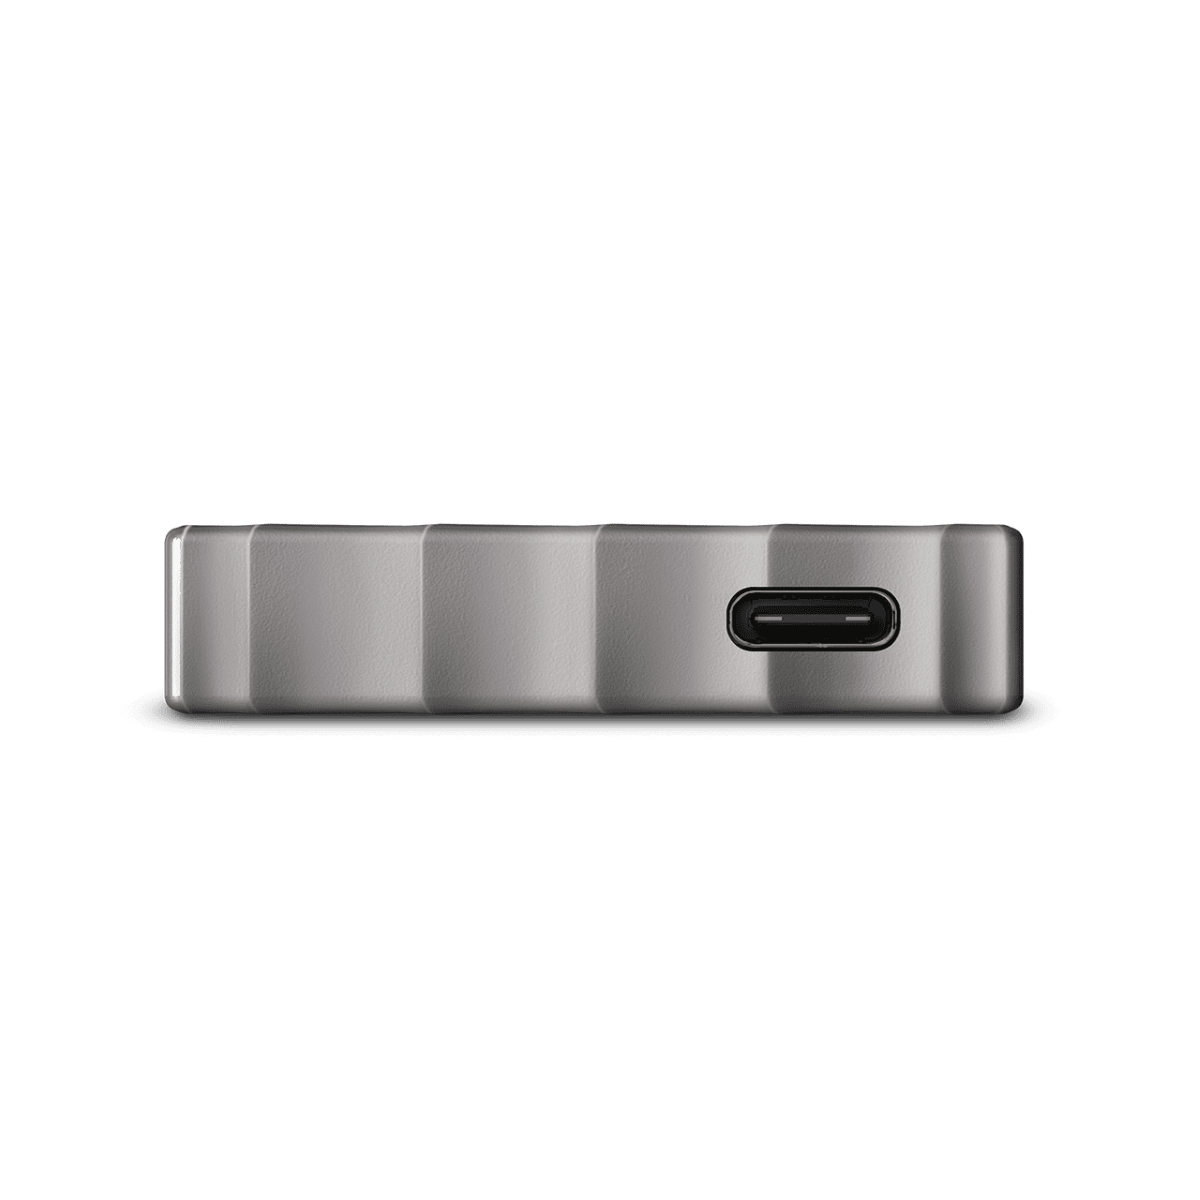 Western Digital My Passport SSD - USB Port